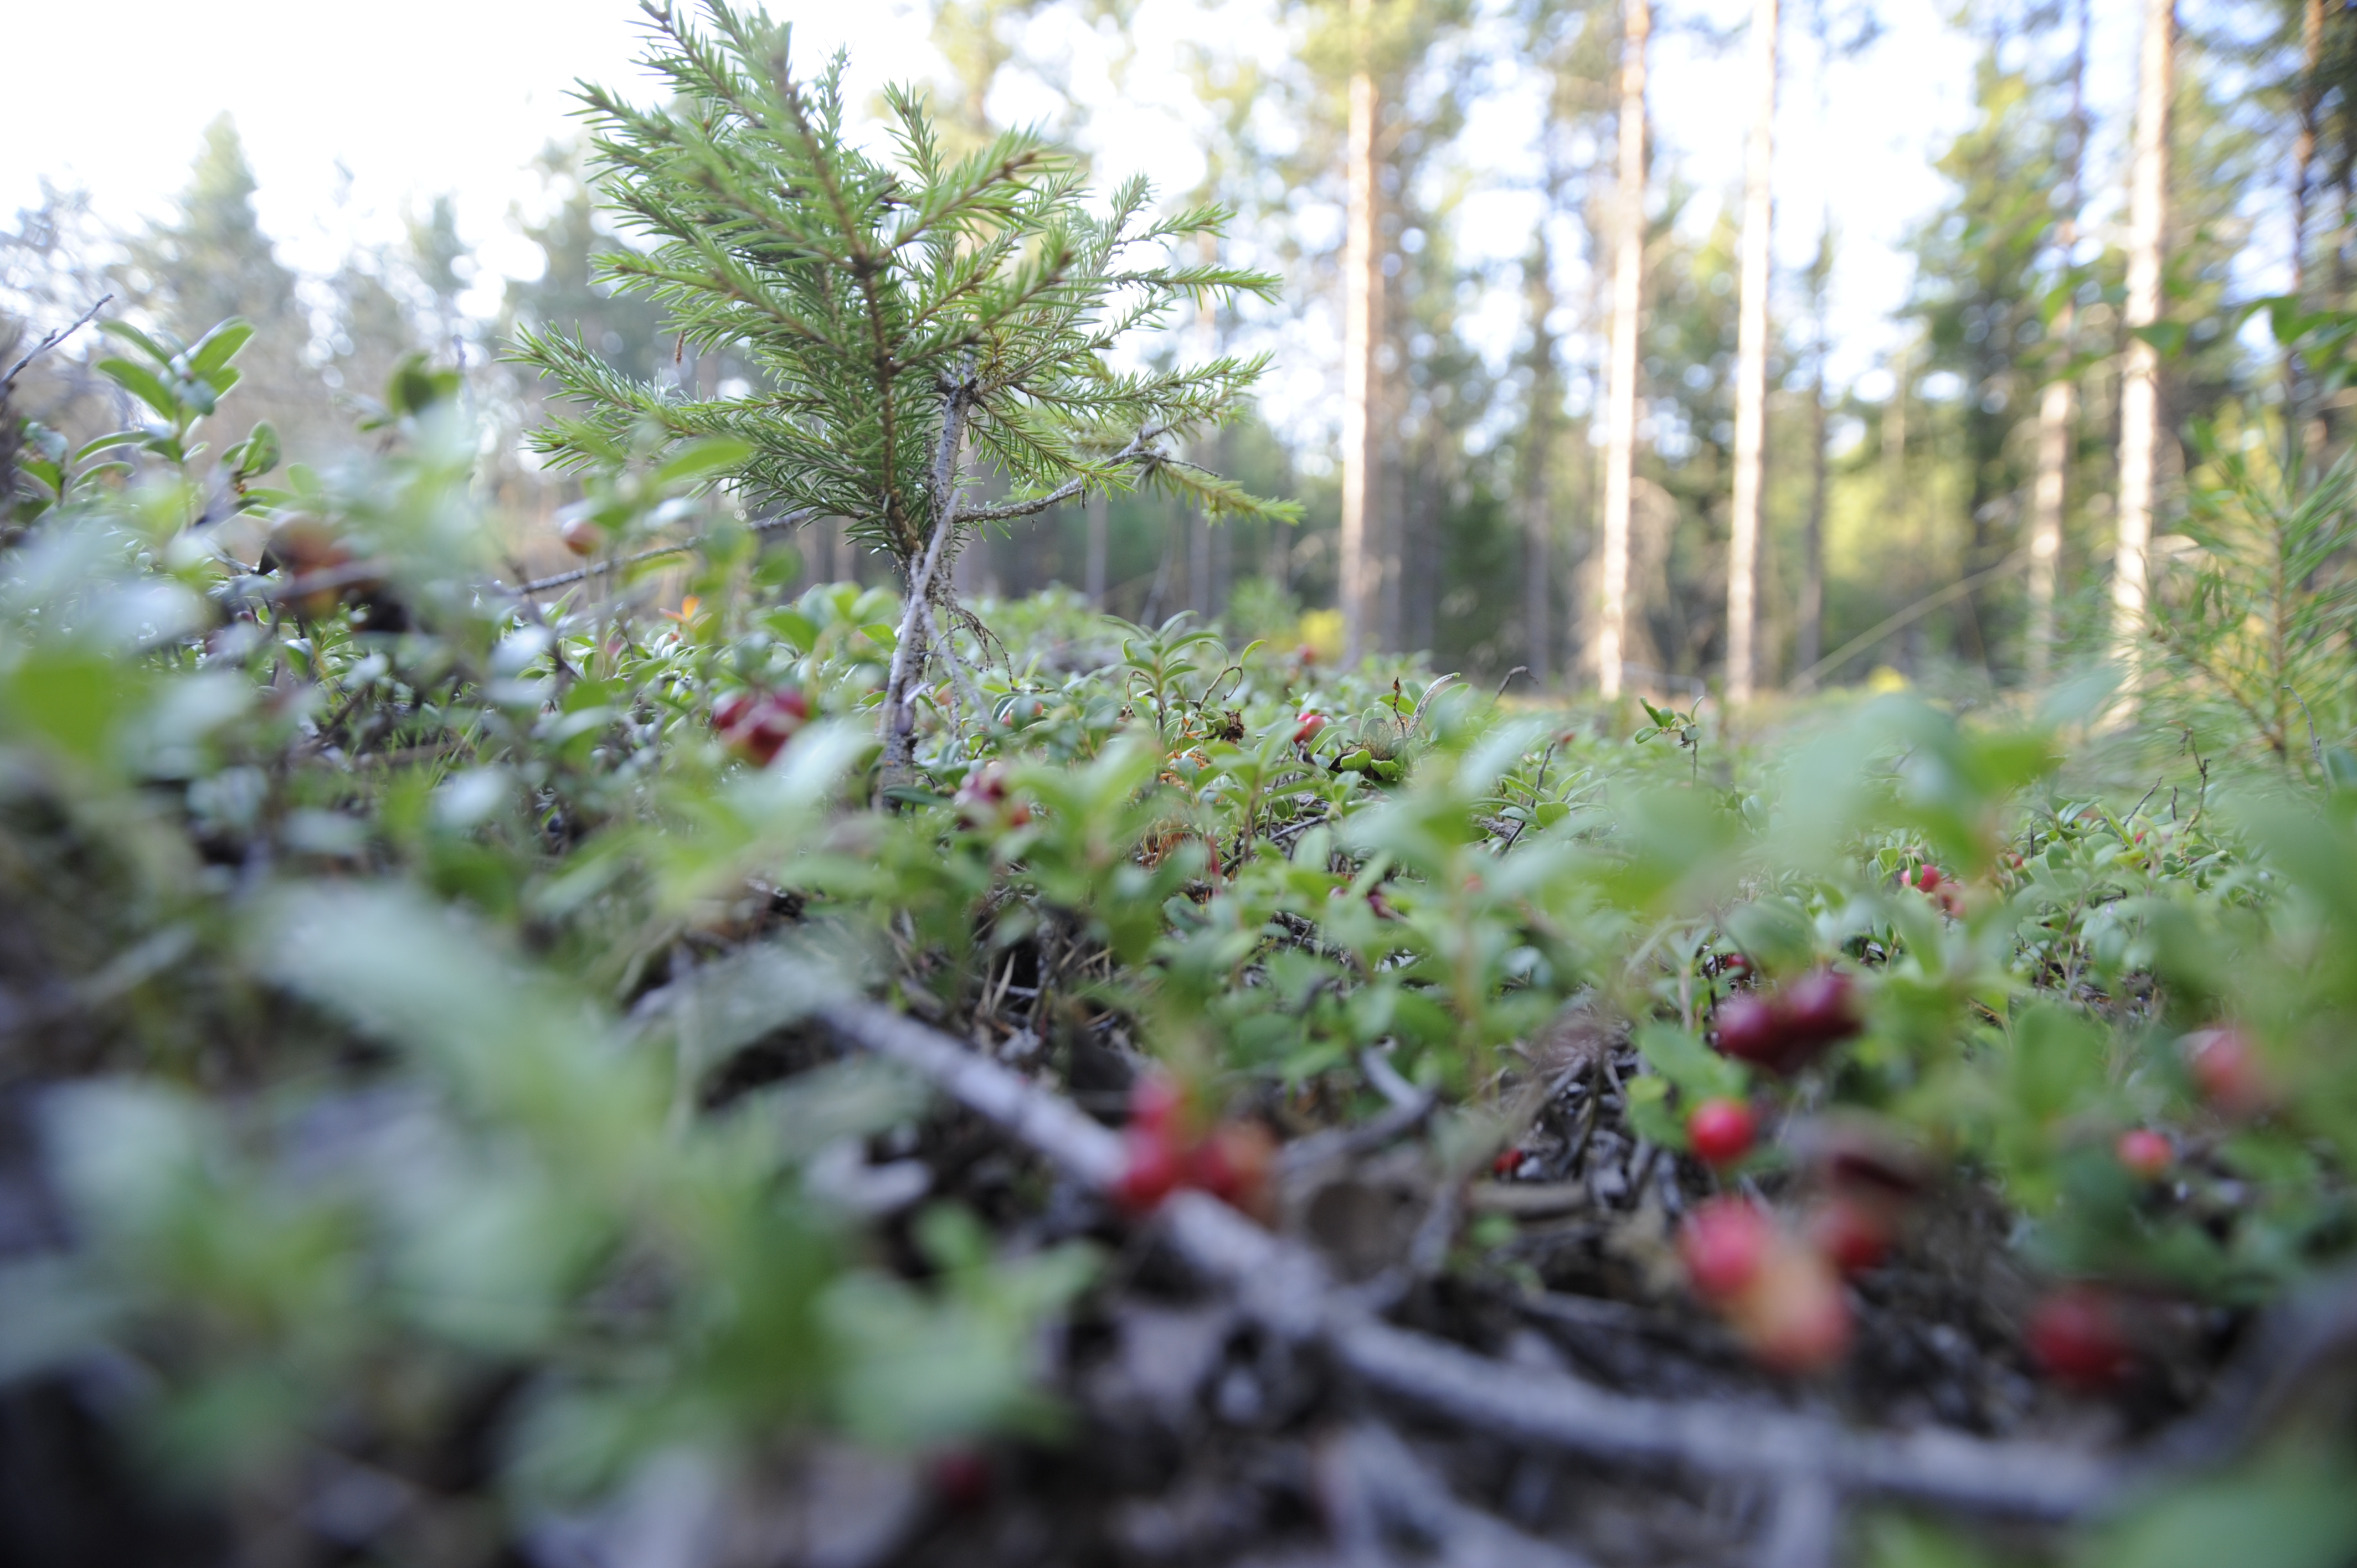 Forest and berries